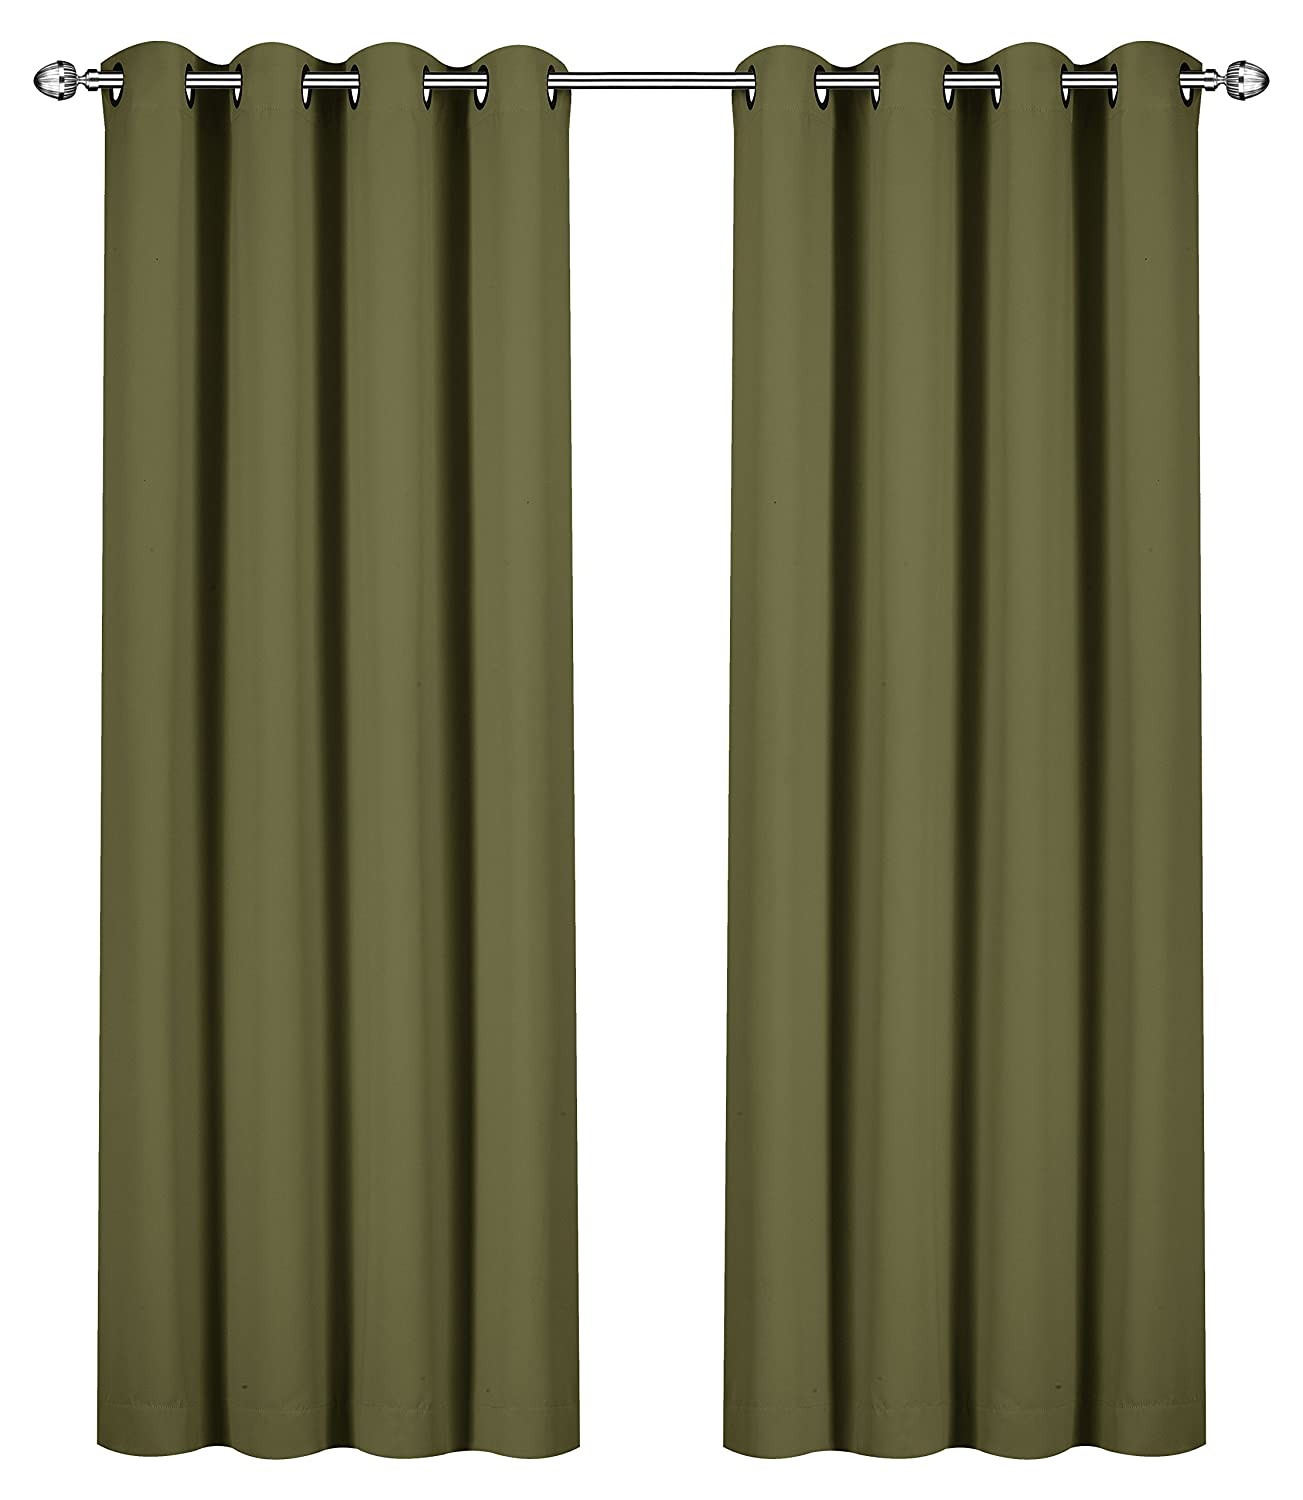 Blackout, Room Darkening Curtains Window Panel Drapes - (Beige Color) 2 Panel Set, 52 inch wide by 84 inch long each panel- by Utopia Bedding UB0116